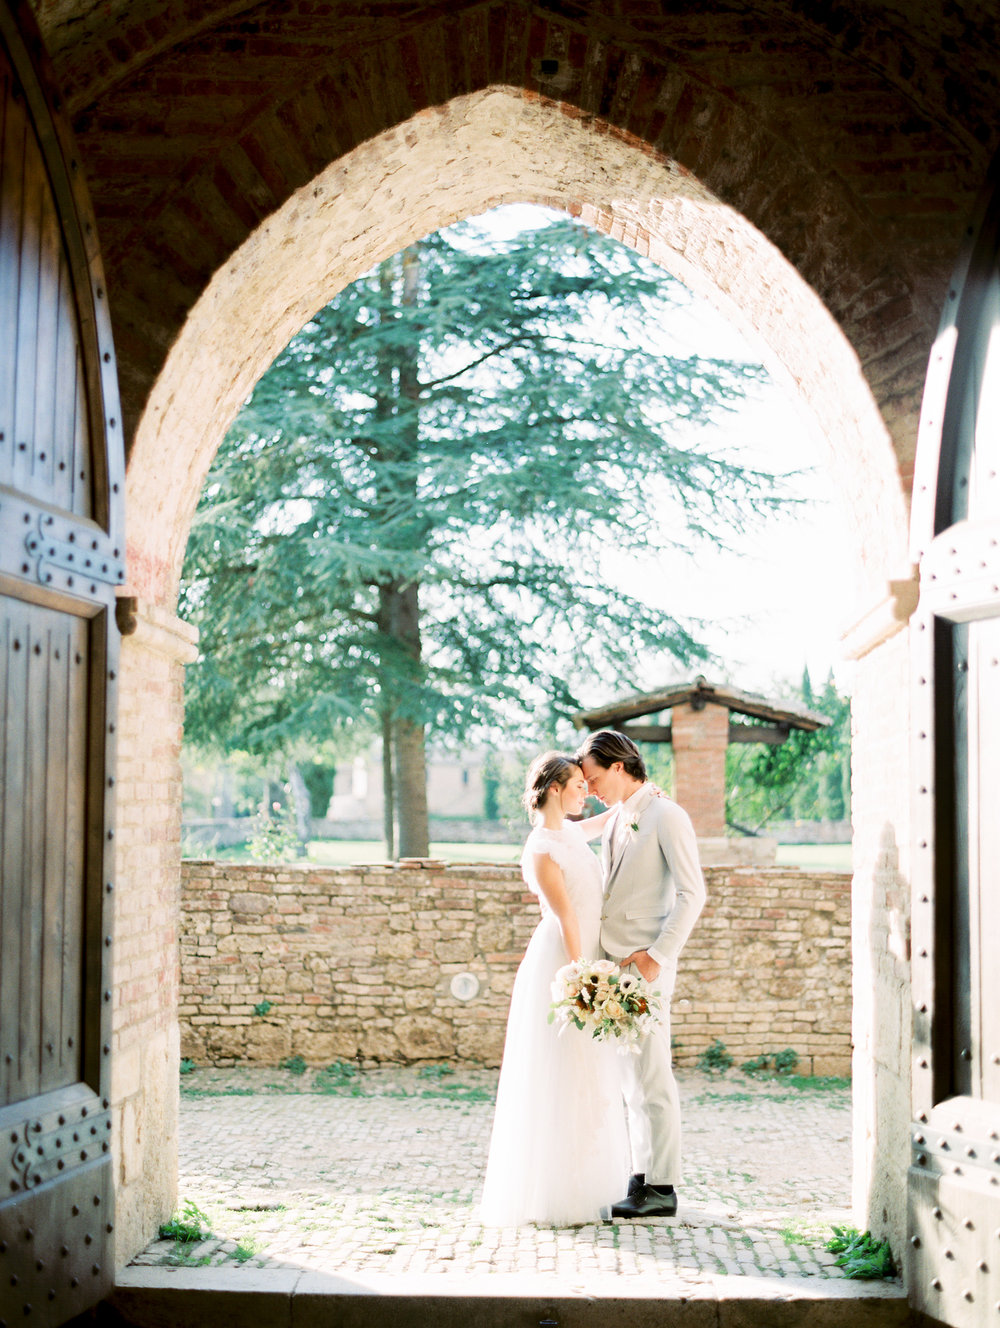 romantic-italy-wedding-in-tuscany-95.jpg